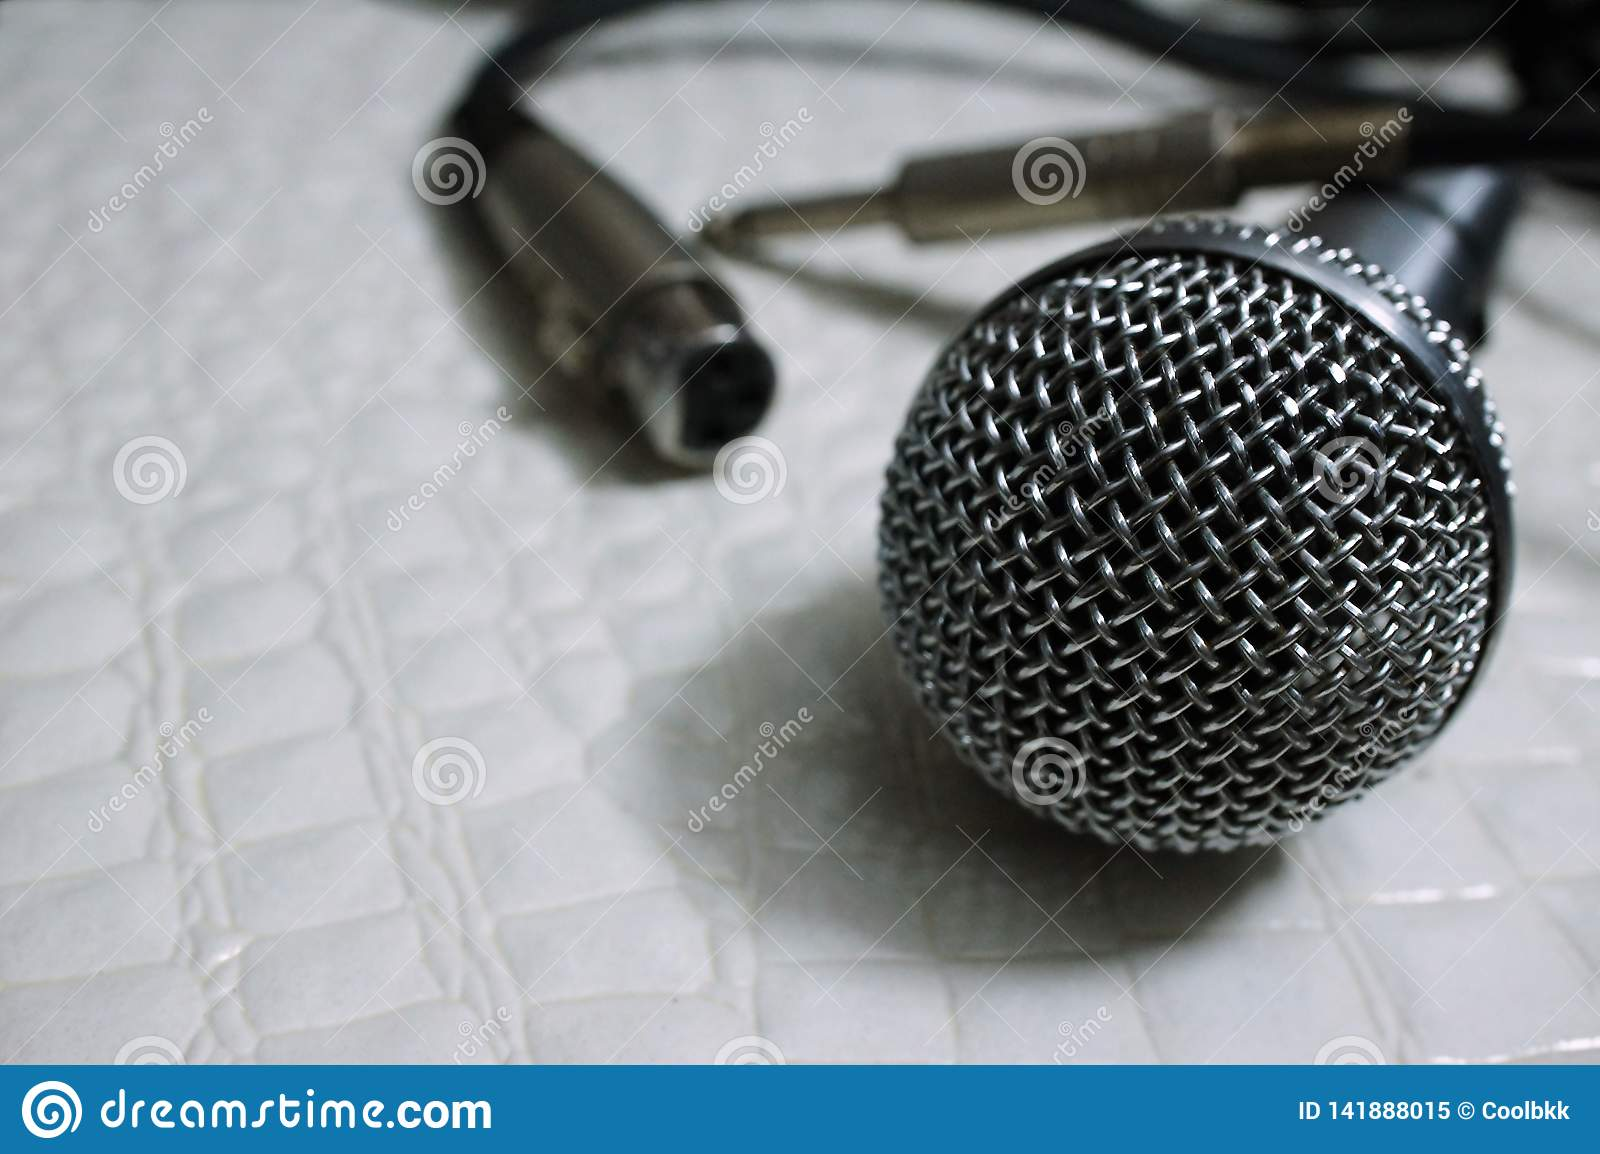 Silver Grille microphone with XLR cable on white leather SELECTIVE FOCUS